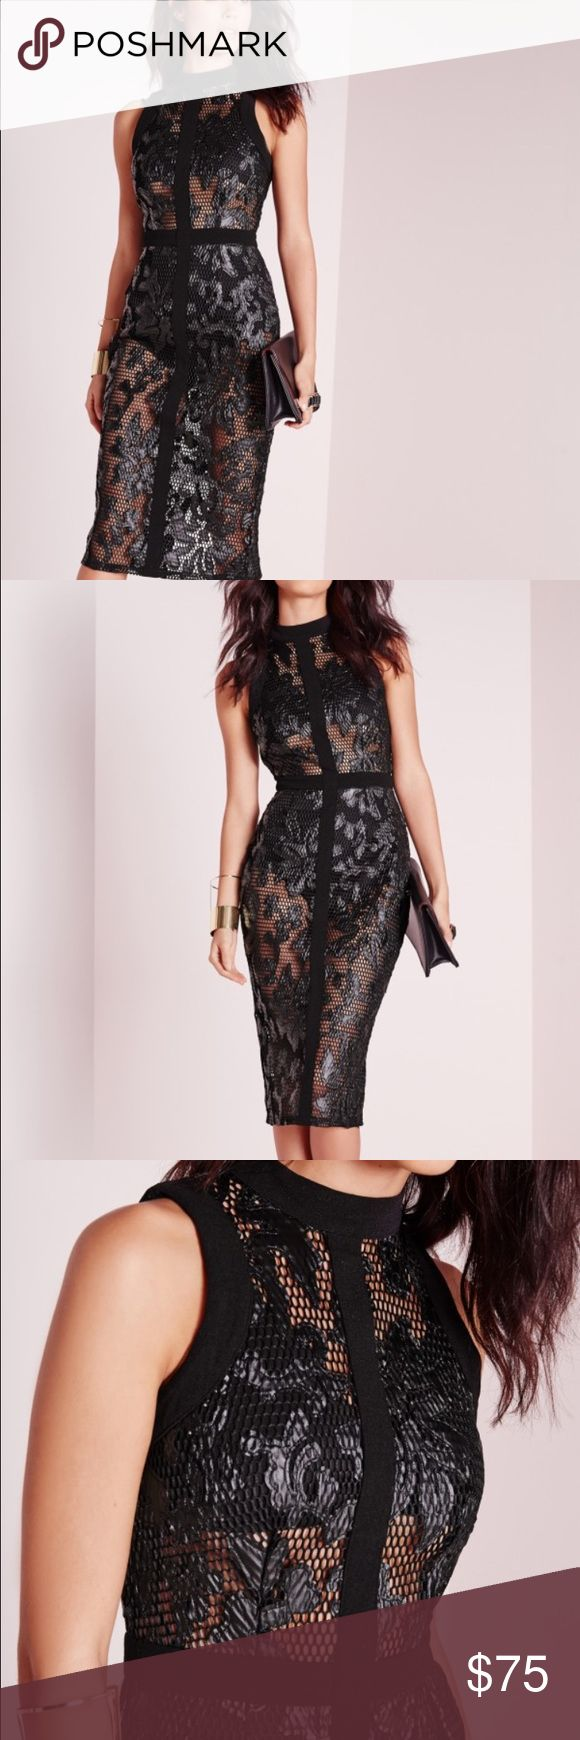 Sexy misguided body con lace dress Sexy. Its classy misguided body con dress.amazonf quality on the fabric! Missguided Dresses Midi